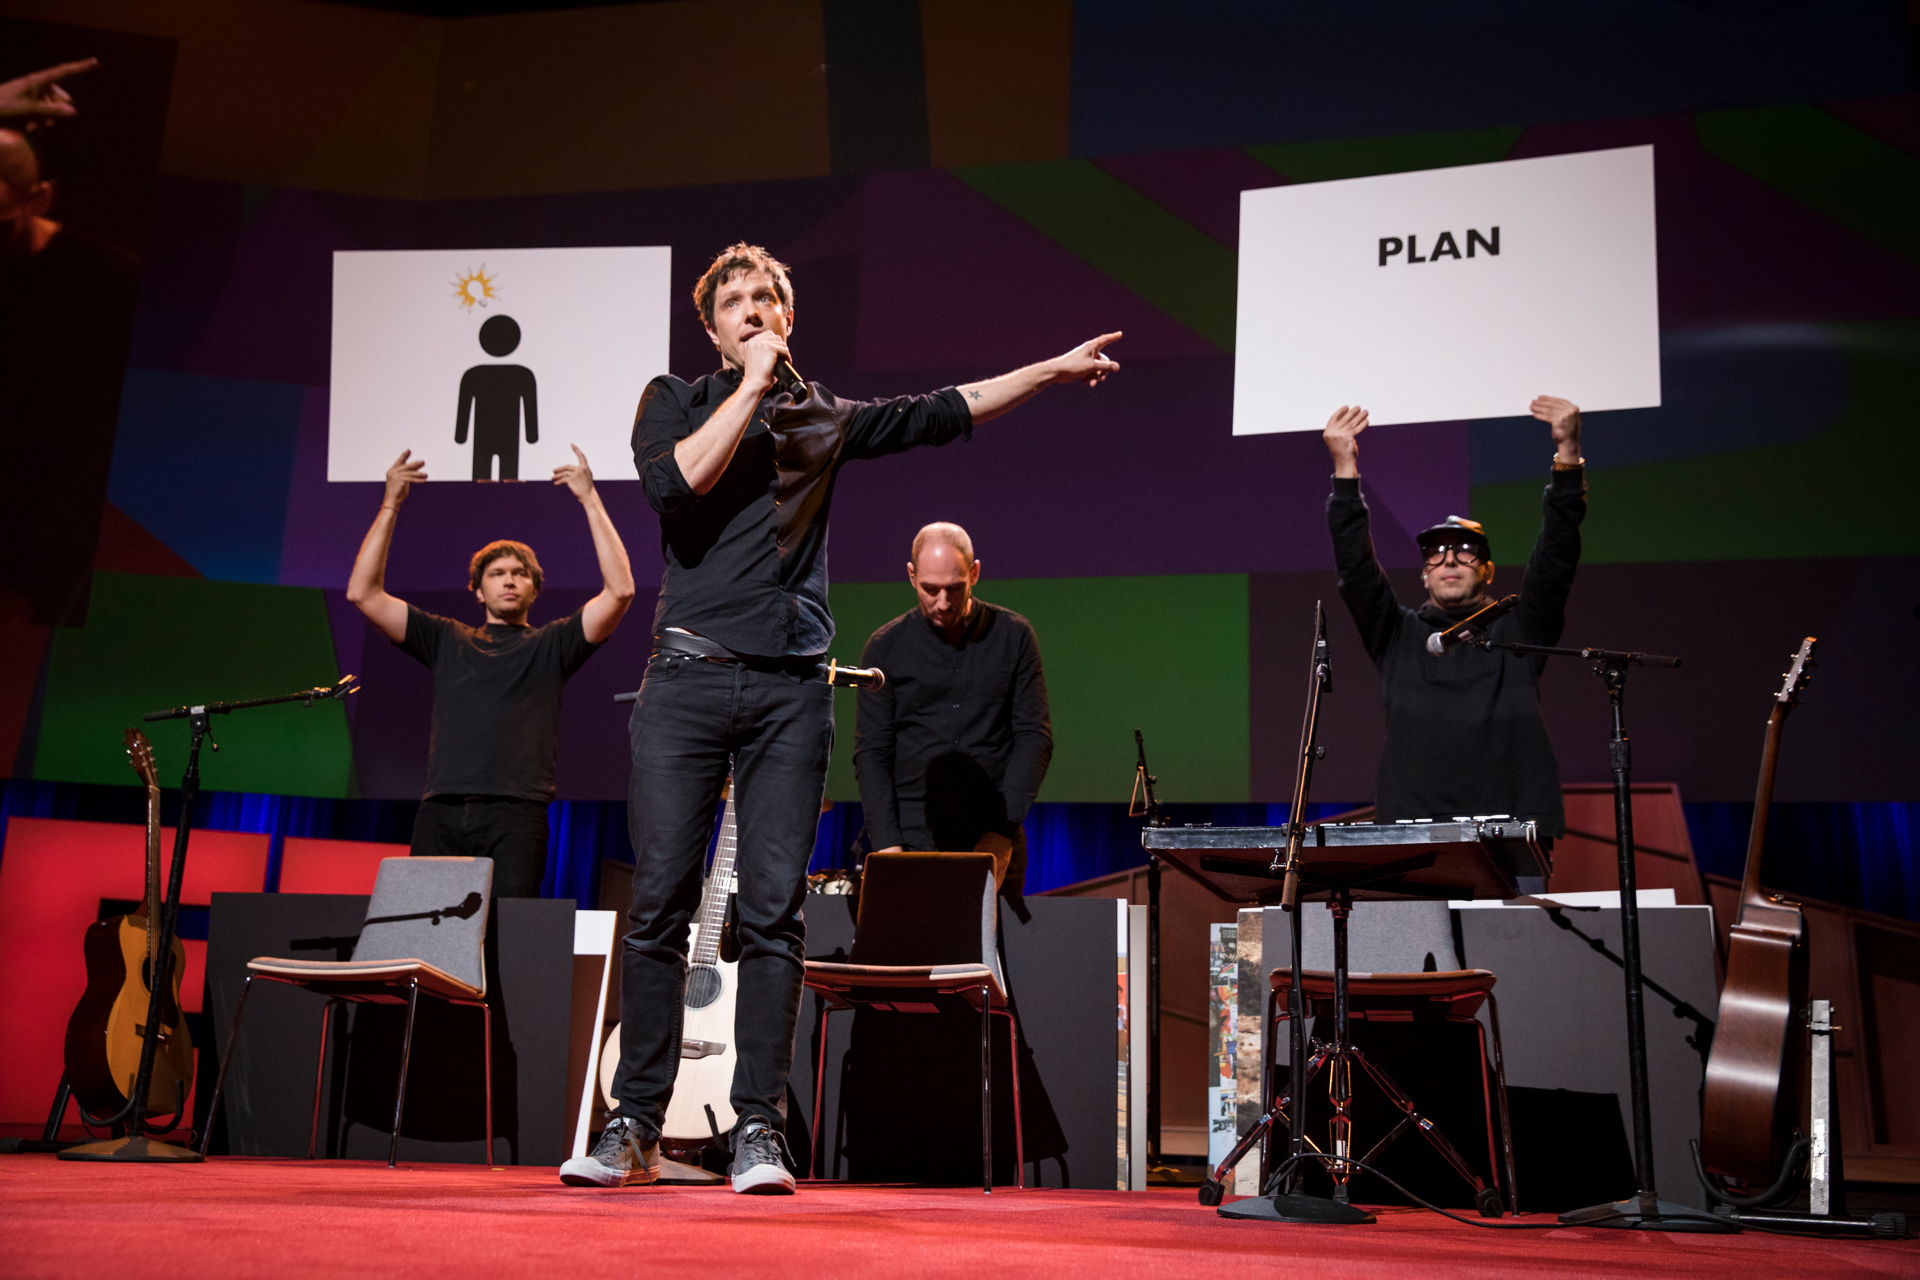 Damian Kulash of OK Go speaks at TED2017 - The Future You, April 24-28, 2017, Vancouver, BC, Canada. Photo: Bret Hartman / TED